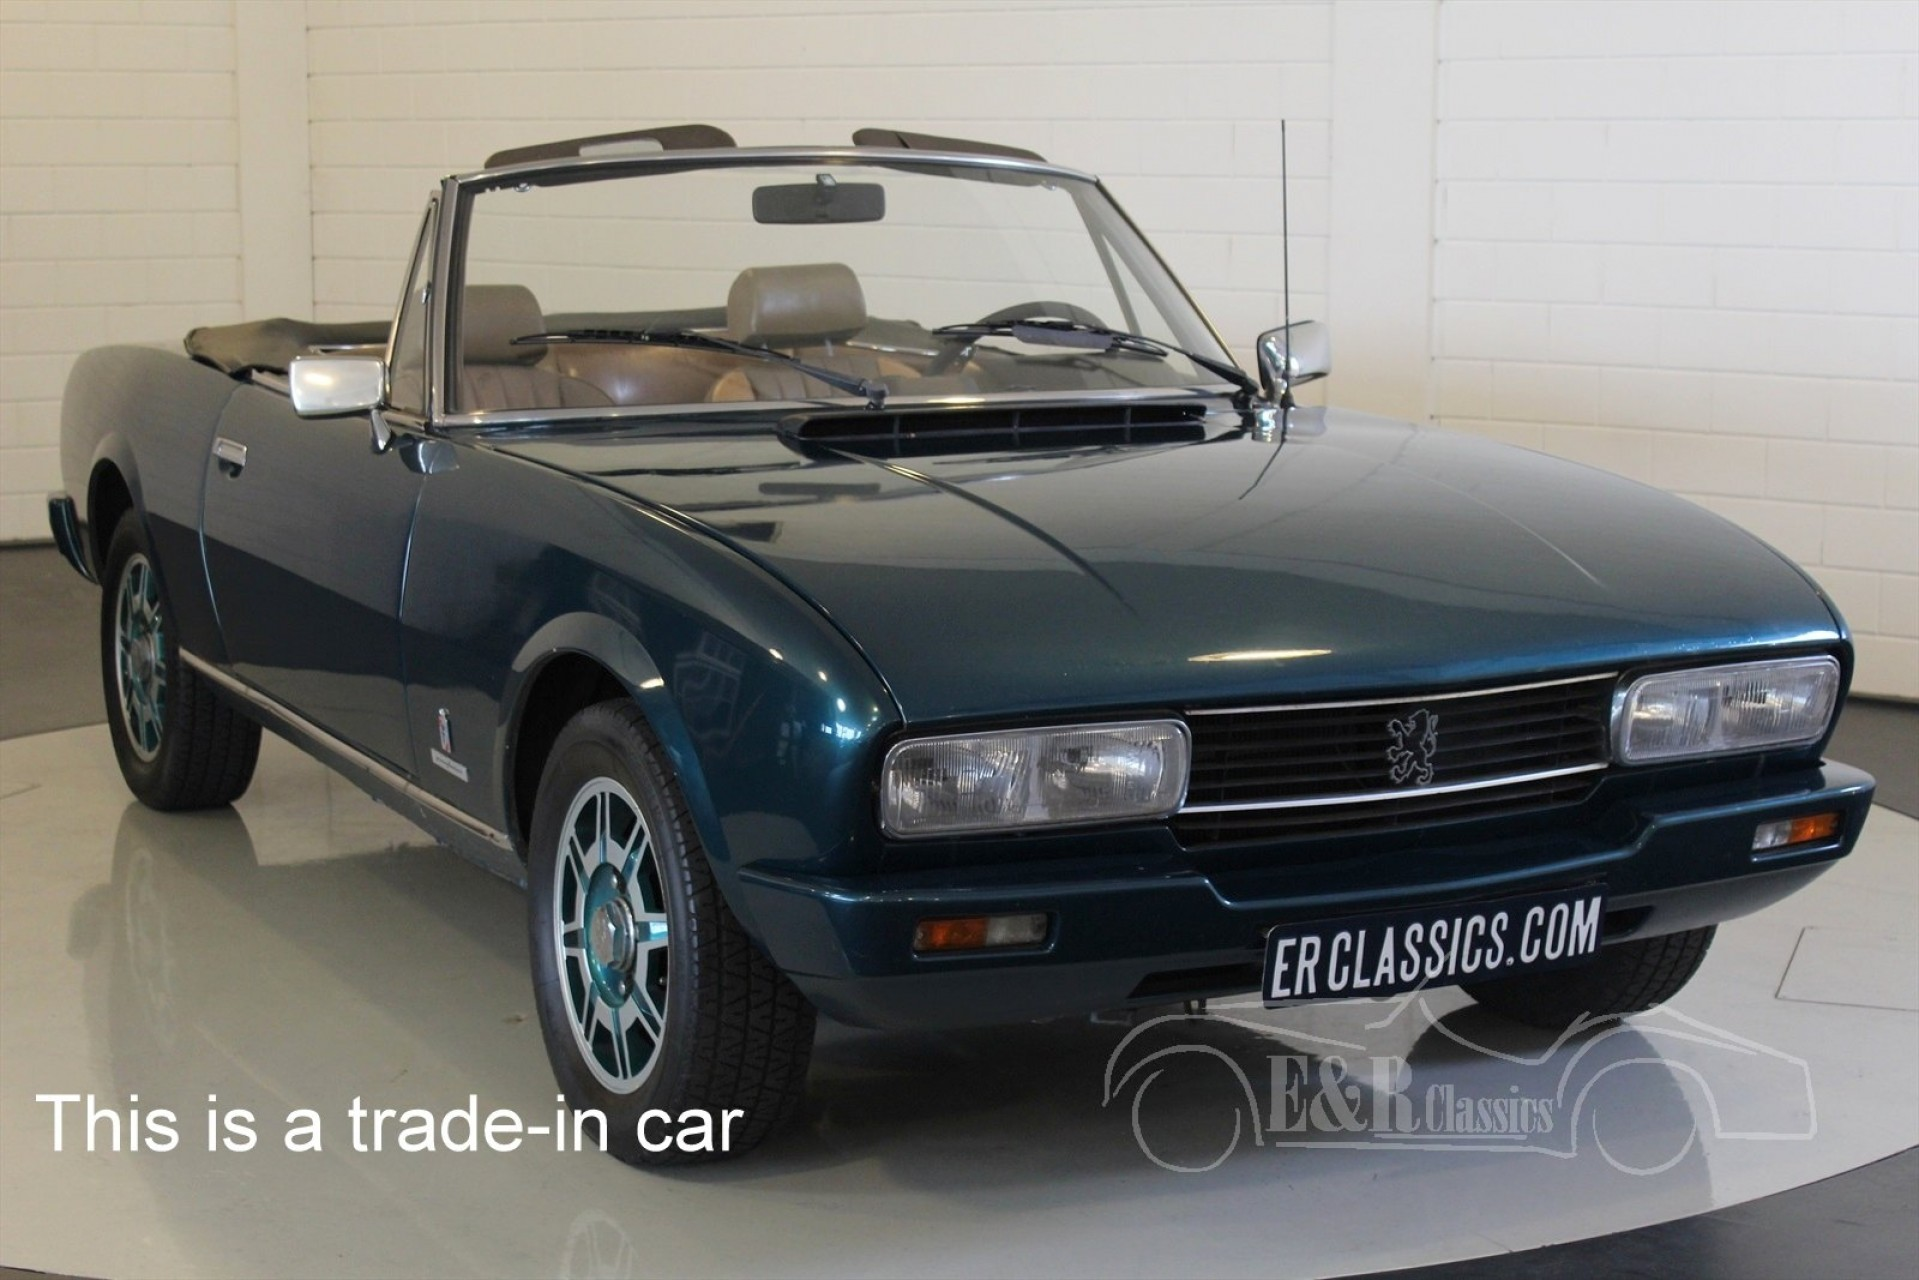 peugeot 504 cabriolet 1980 vendre erclassics. Black Bedroom Furniture Sets. Home Design Ideas